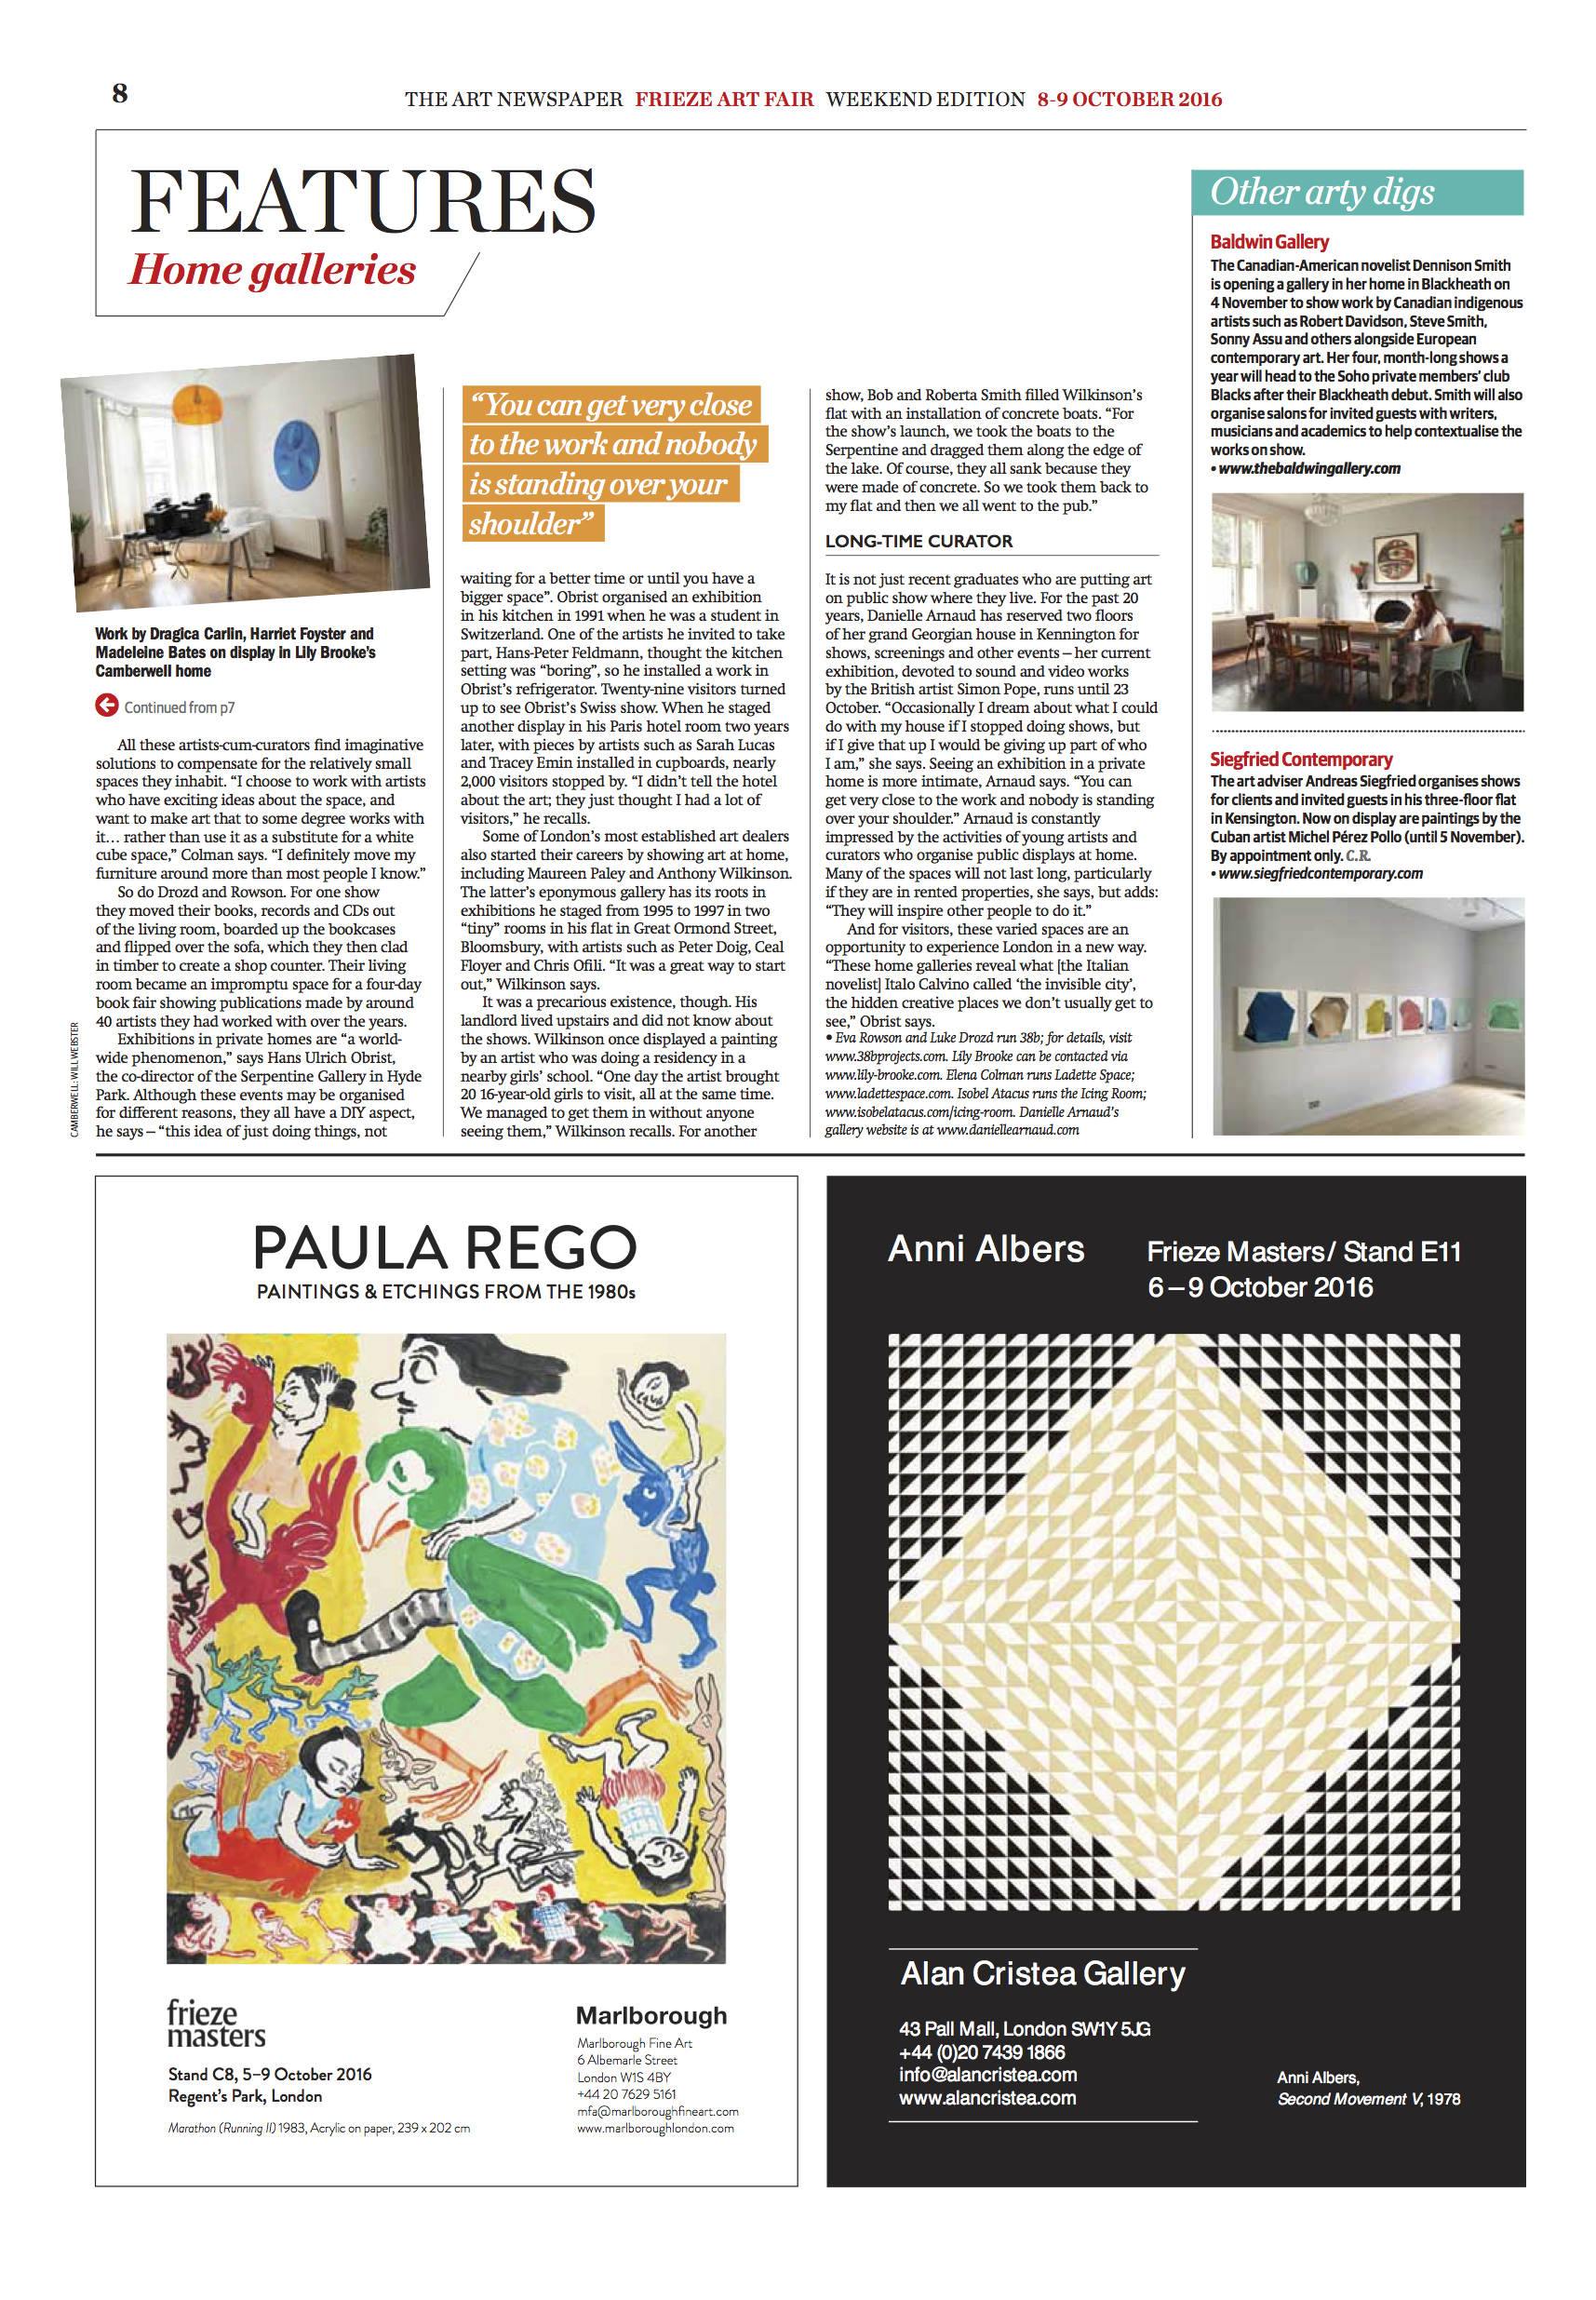 The Art Newspaper_The Baldwin Gallery_ Home is Where the Art is 2